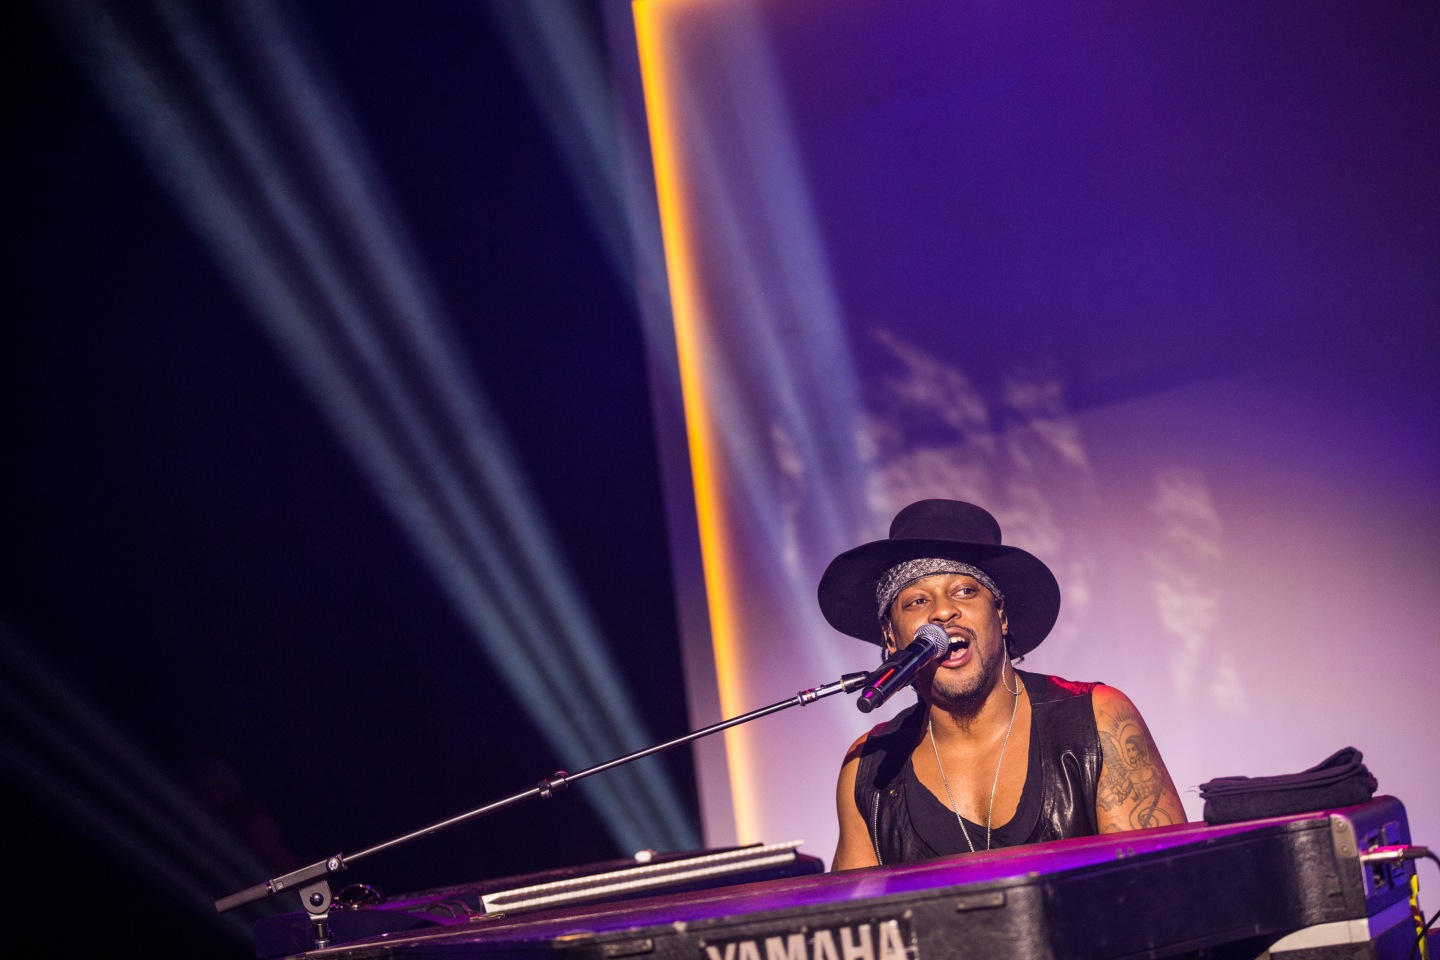 20 Years Later, D'Angelo Has Finally Found His Voice